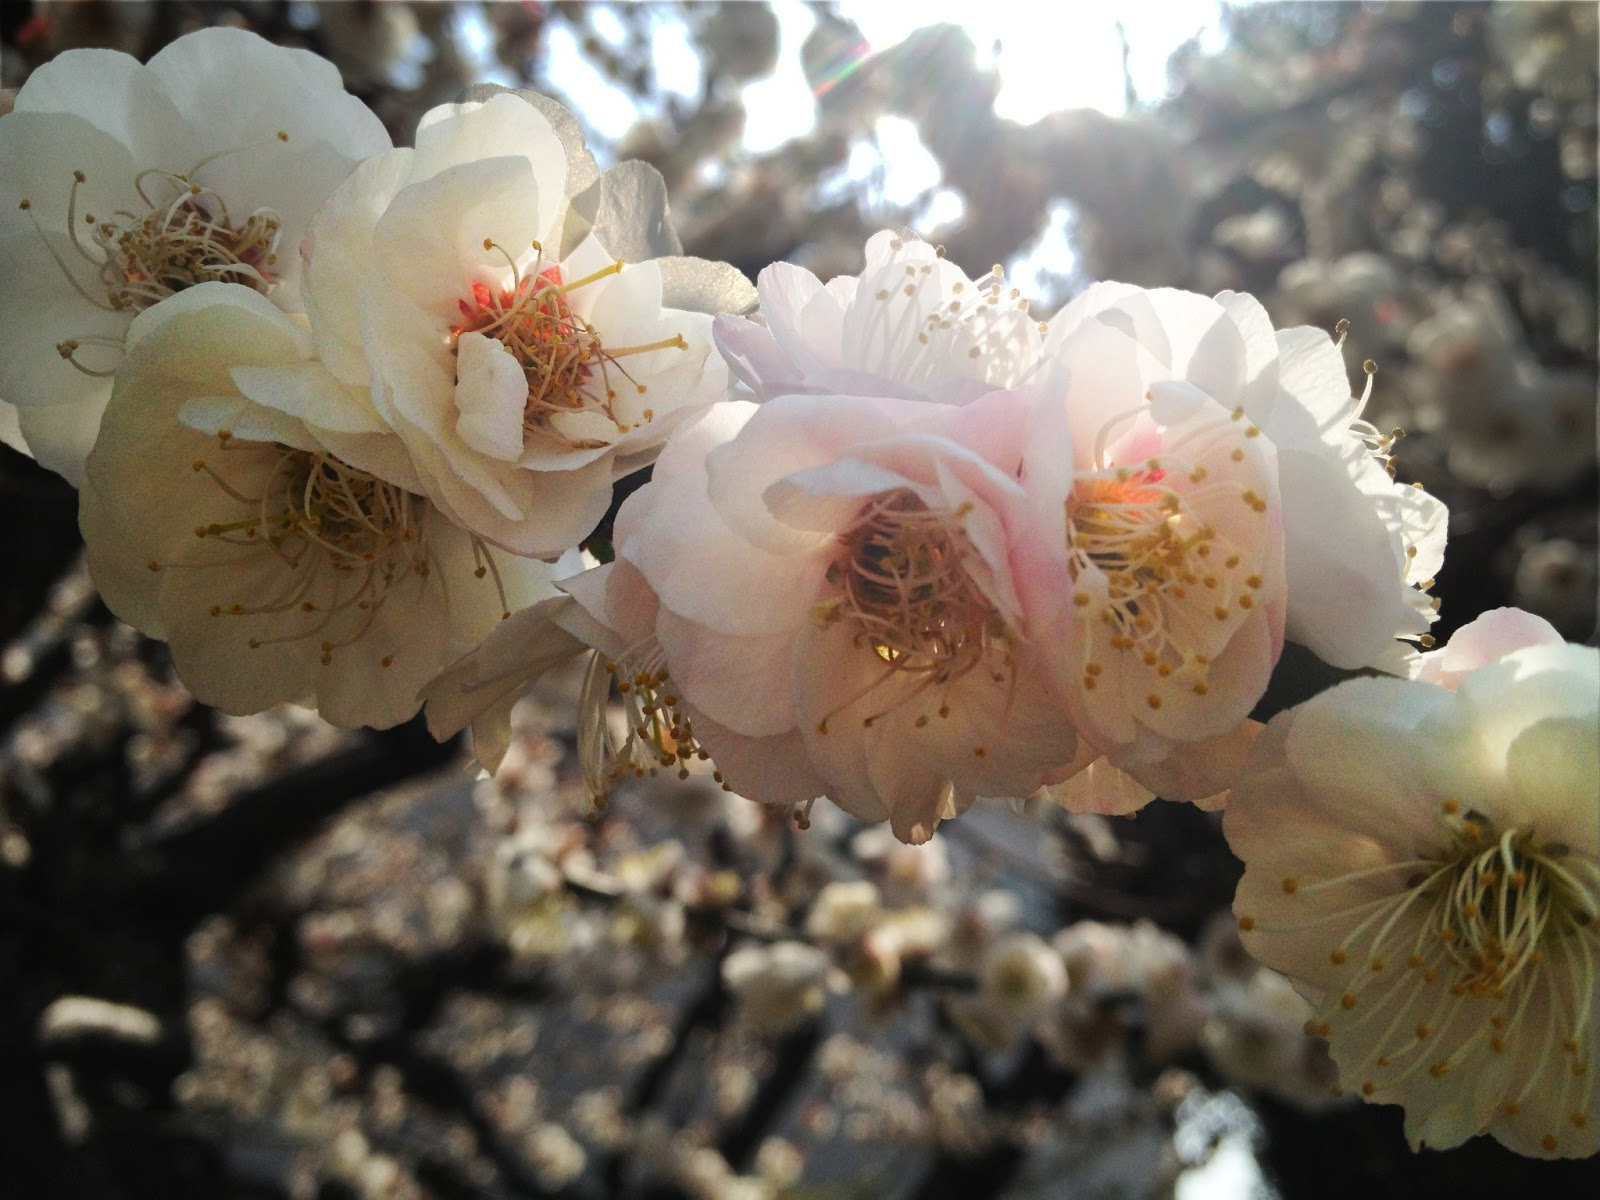 Marketing Japan Springtime Plums And Other Japanese Flowers At